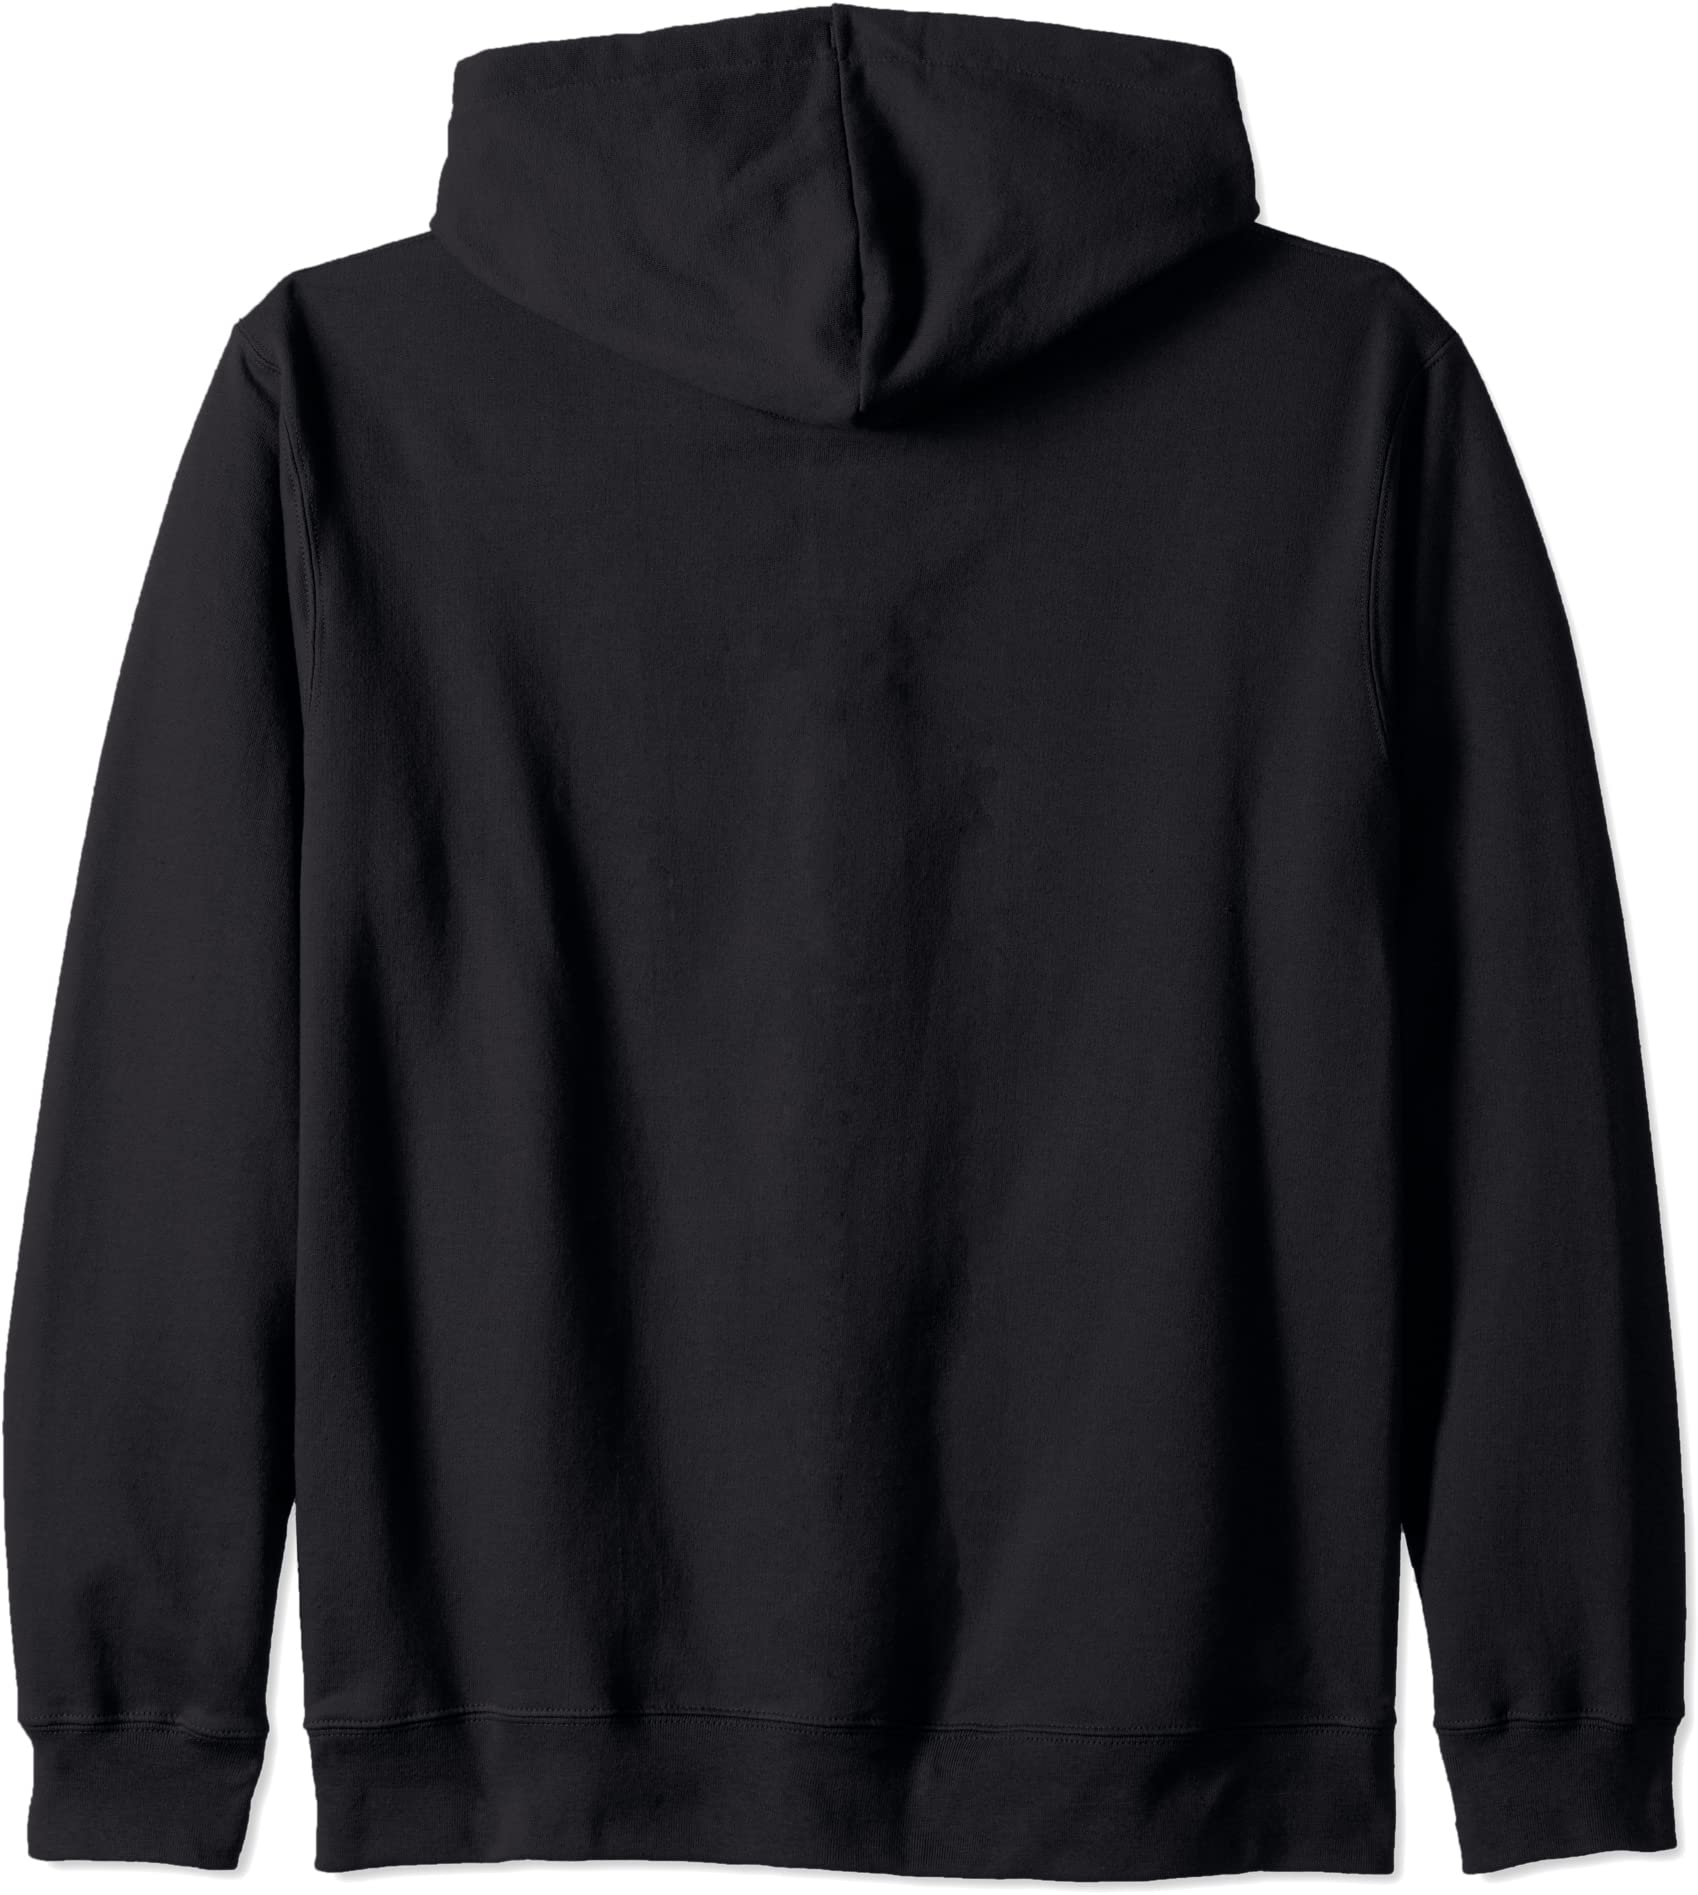 Doryti Mechanics Wife Zip Hooded Sweatshirt